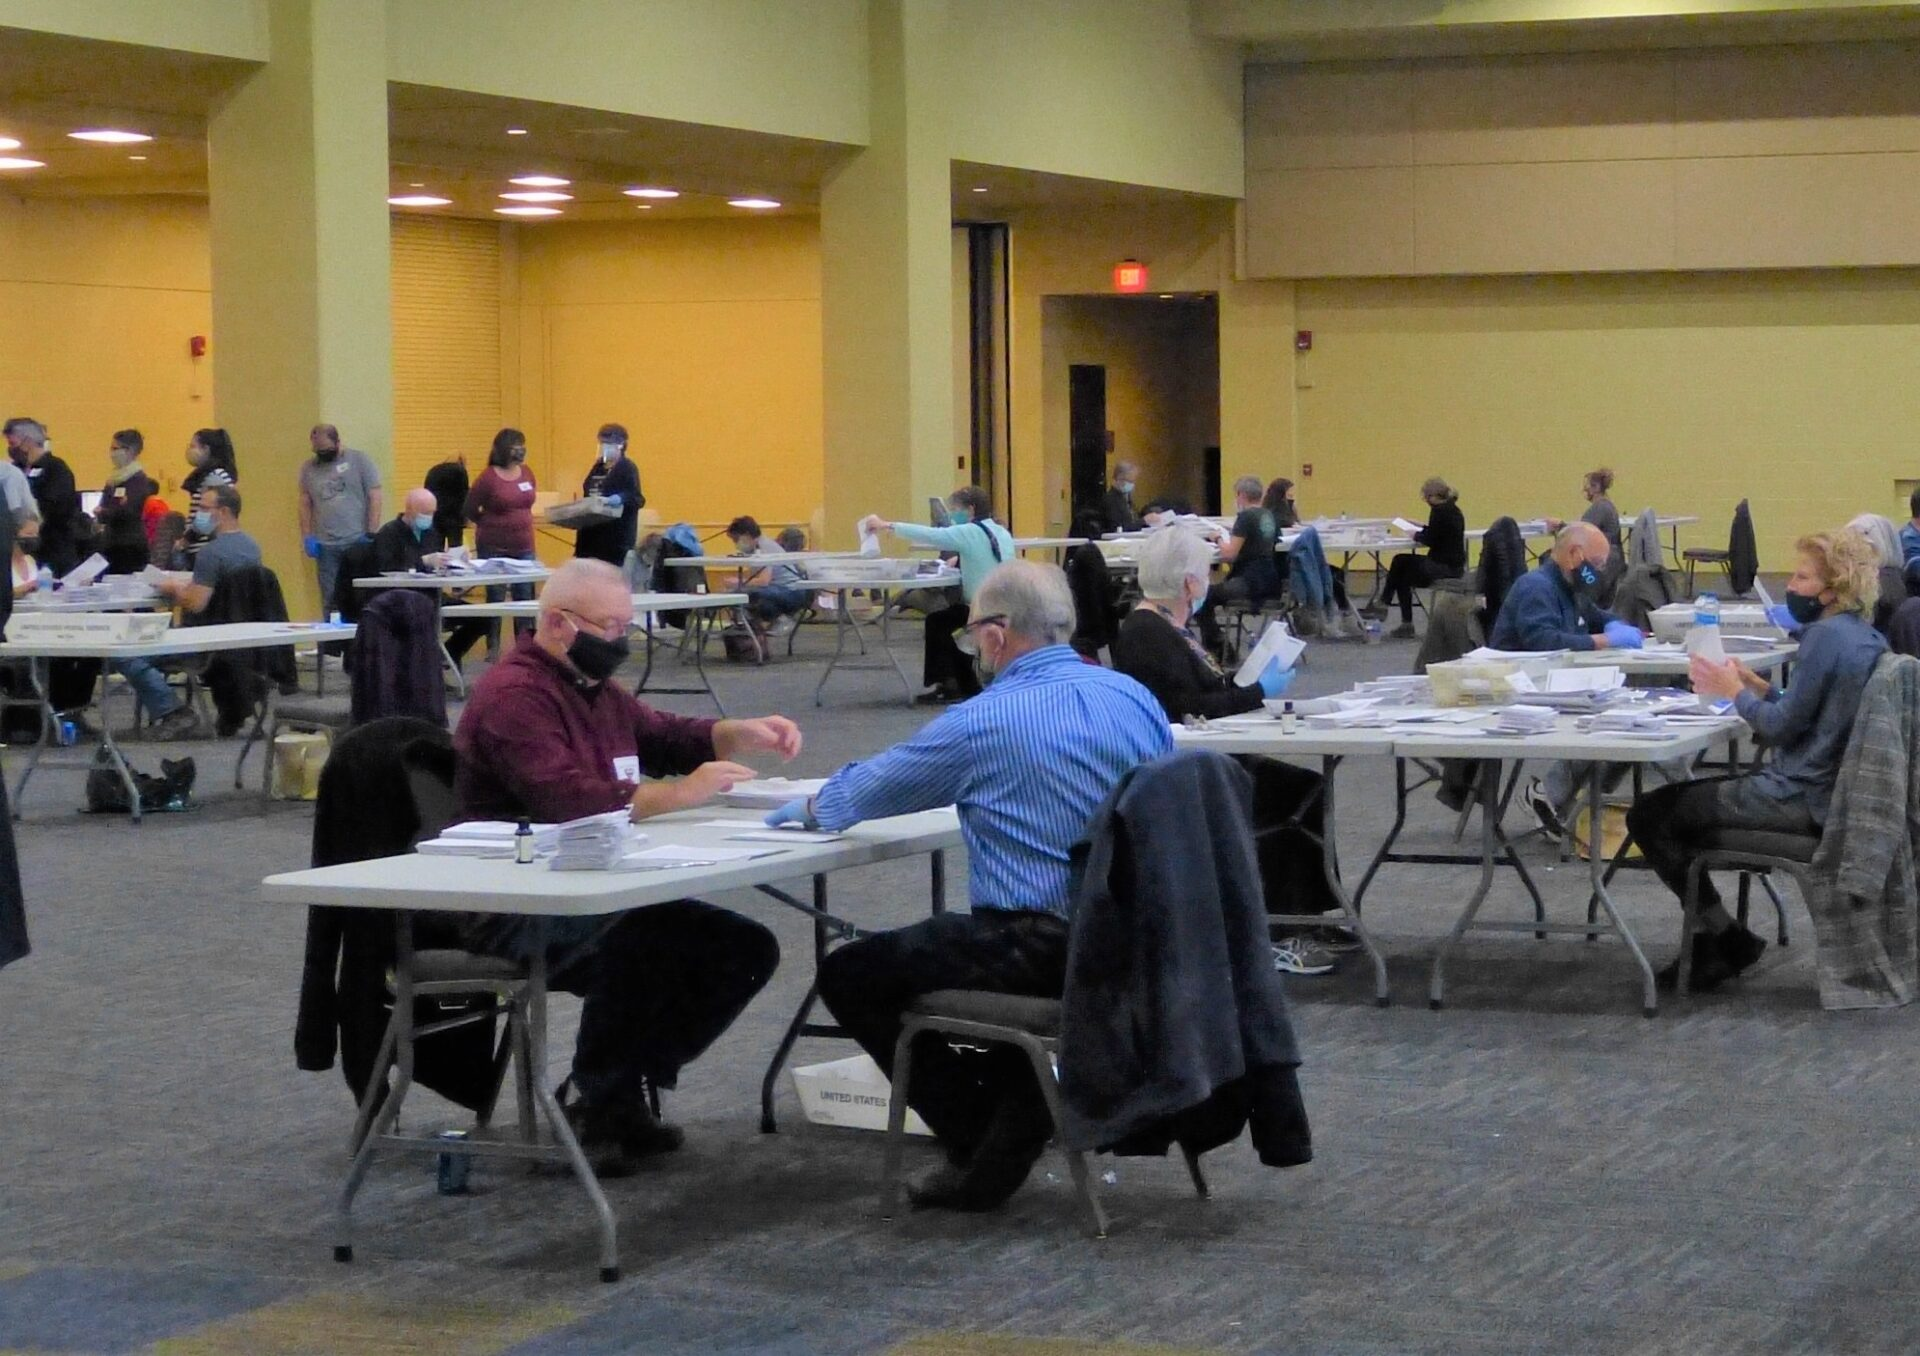 Volunteers open mail-in ballot envelopes and prepare ballots for scanning at the Lancaster County Convention Center on Election Day, Tuesday, Nov. 3, 2020. (Photo: Tim Stuhldreher)